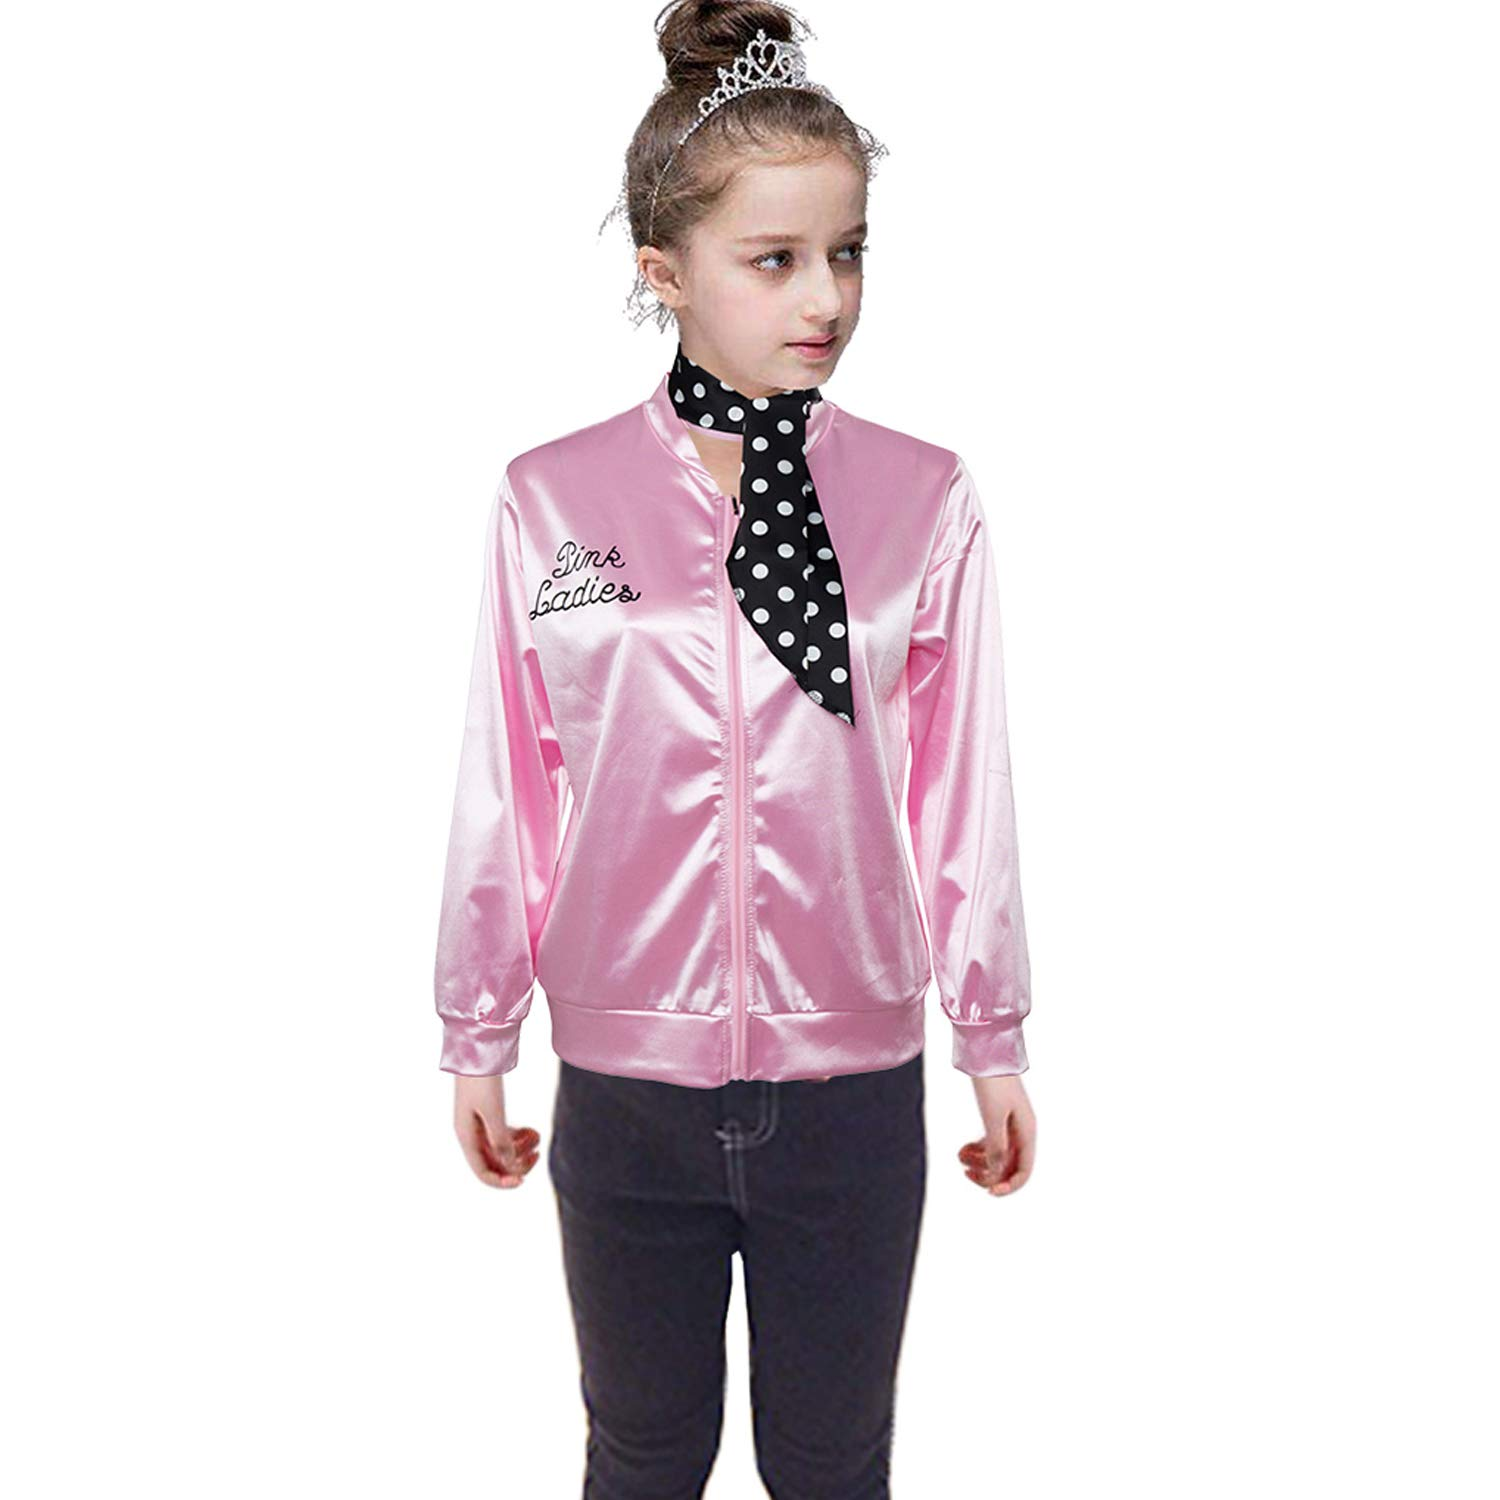 50S Grease T-Bird Danny Pink Ladies Satin Jacket Costume with Polka Dot Scarf for Girls (10, Pink)